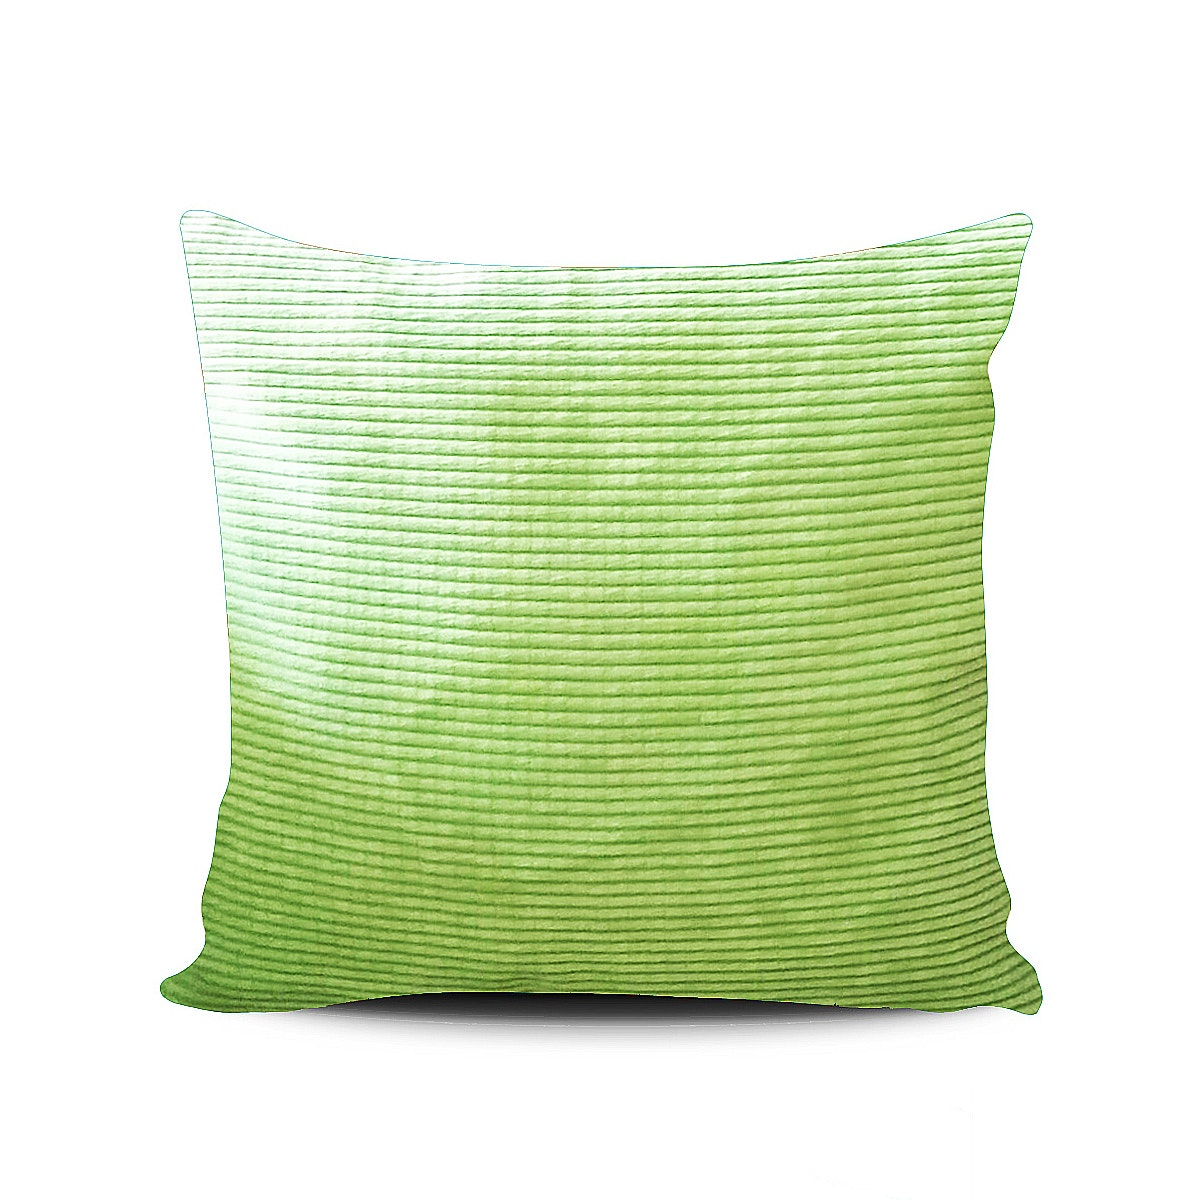 ELHA Sarung Bantal Cushion 22 40x40cm